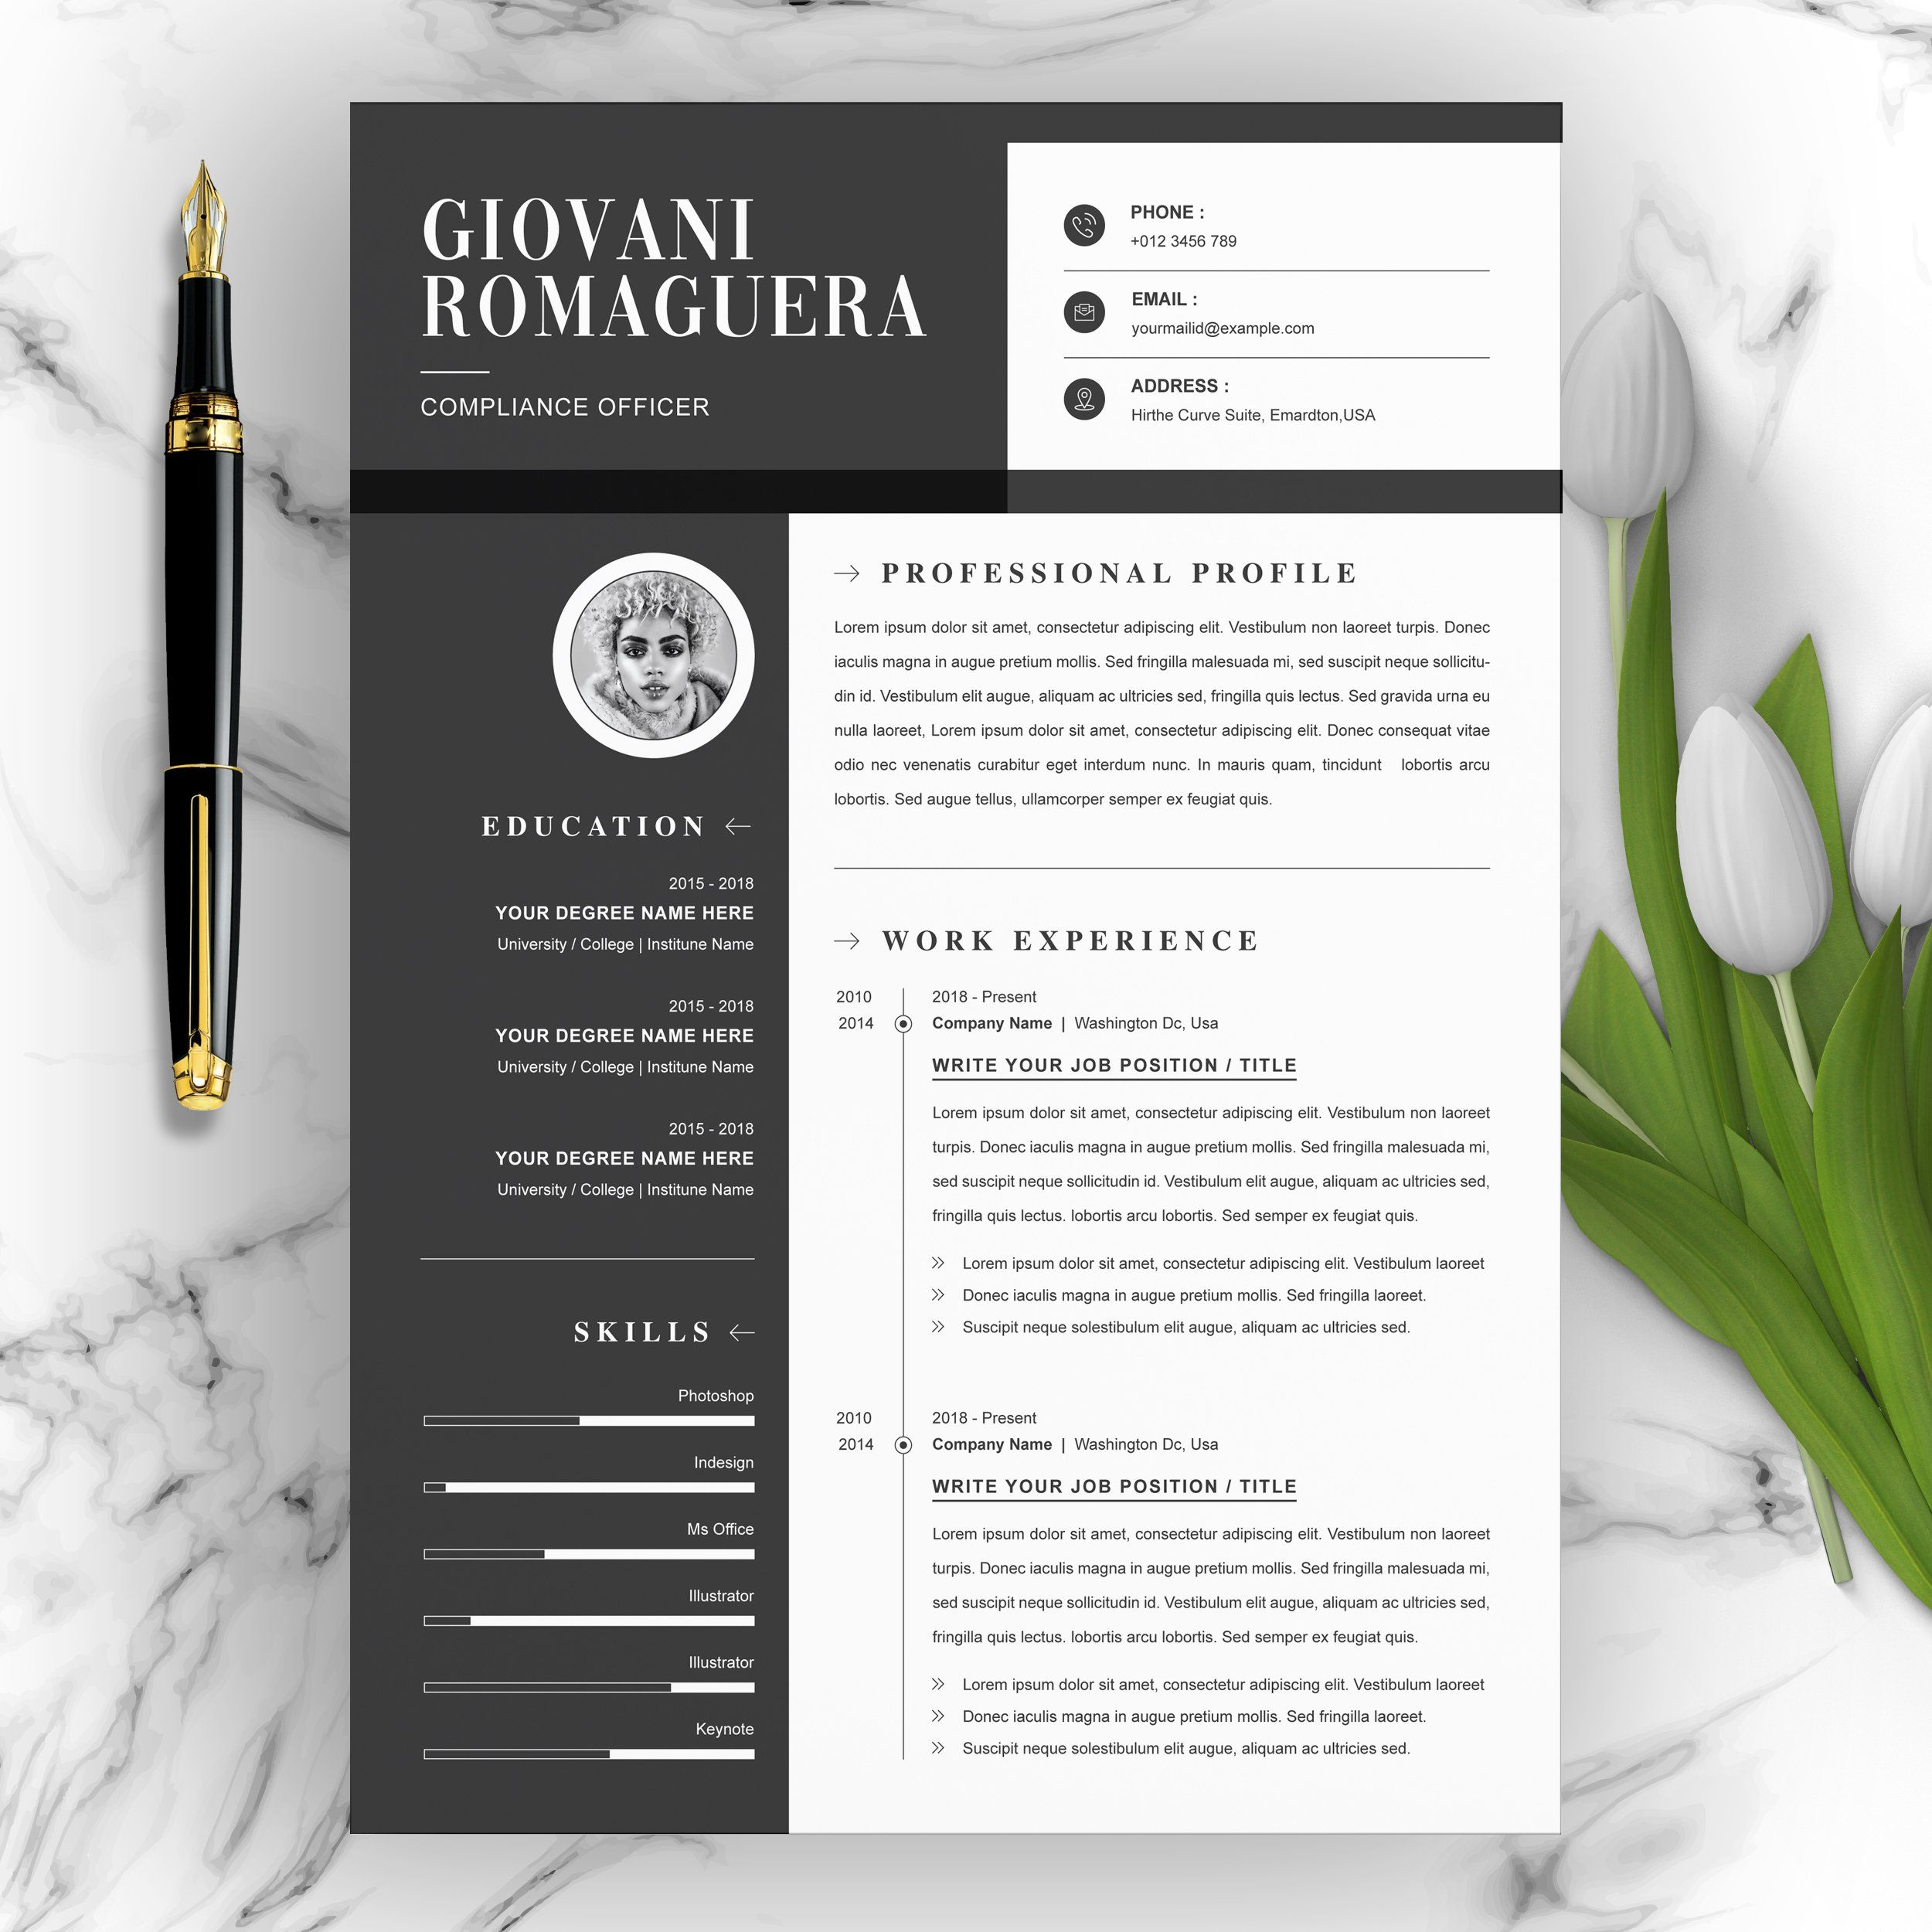 Minimal and Black White Clean Resume Game assets, Resume